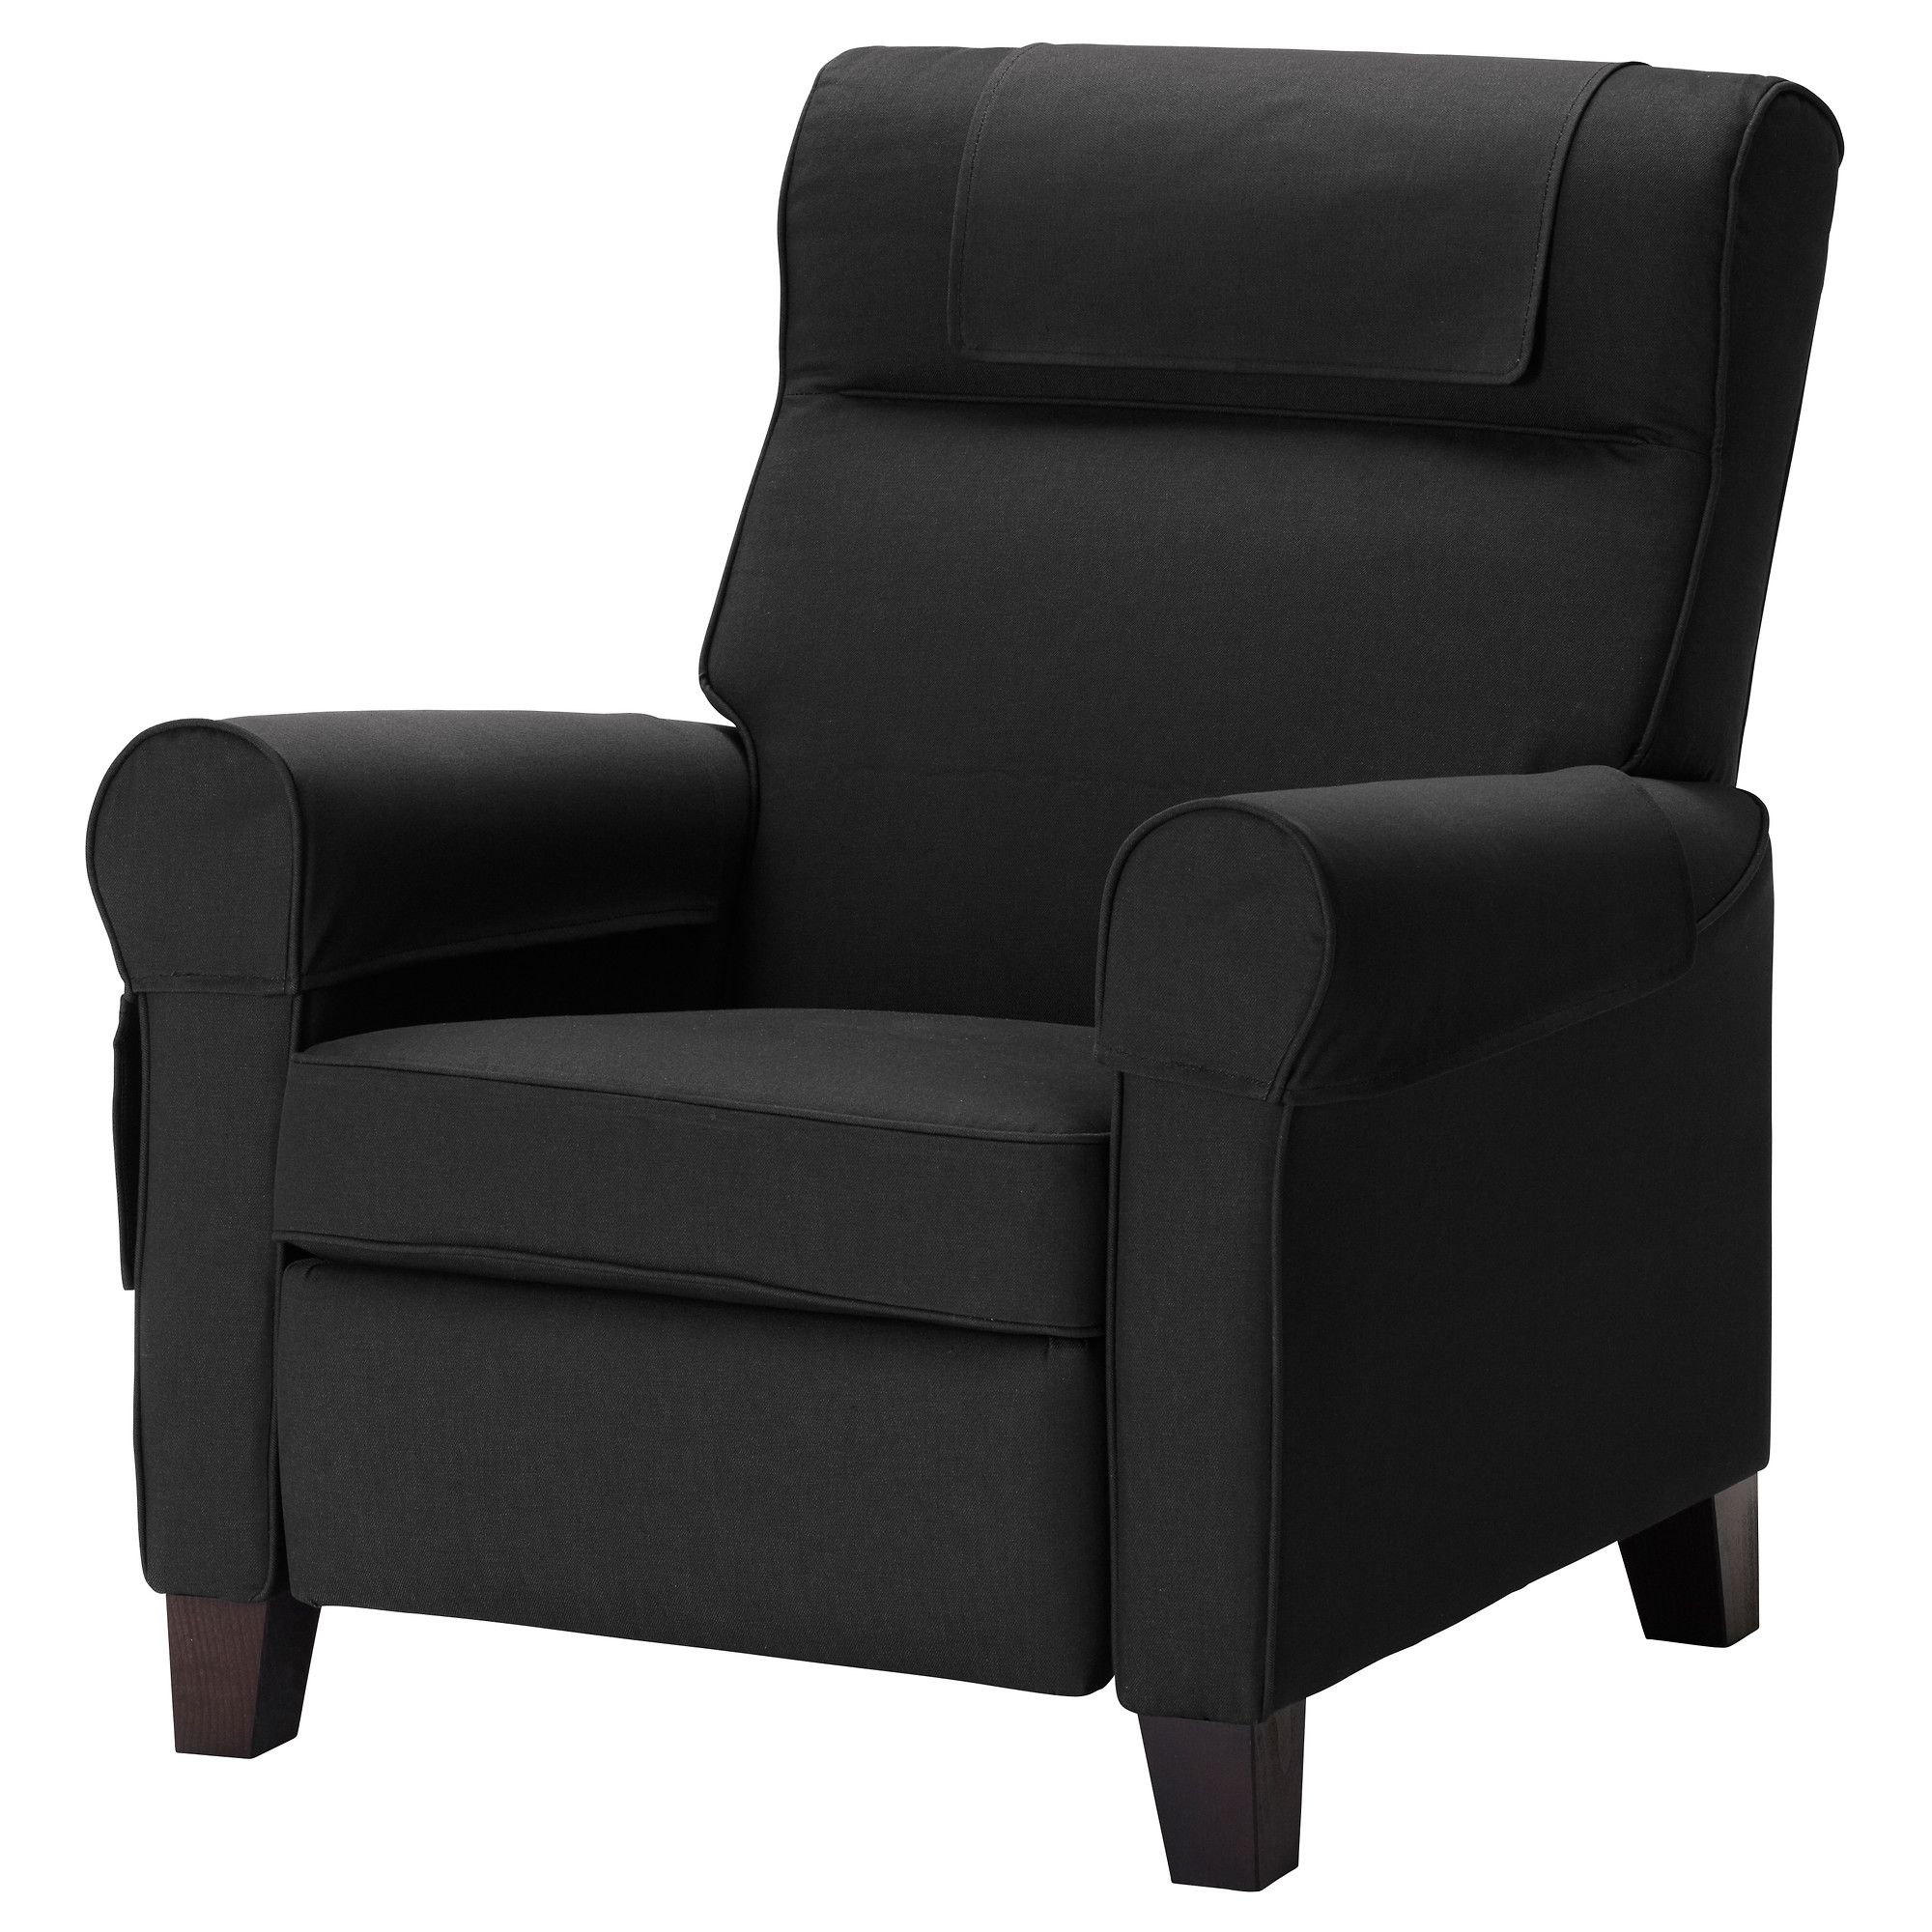 Sessel Muren Muren Chair Idemo Black Ikea 299 Cabin Living Sessel